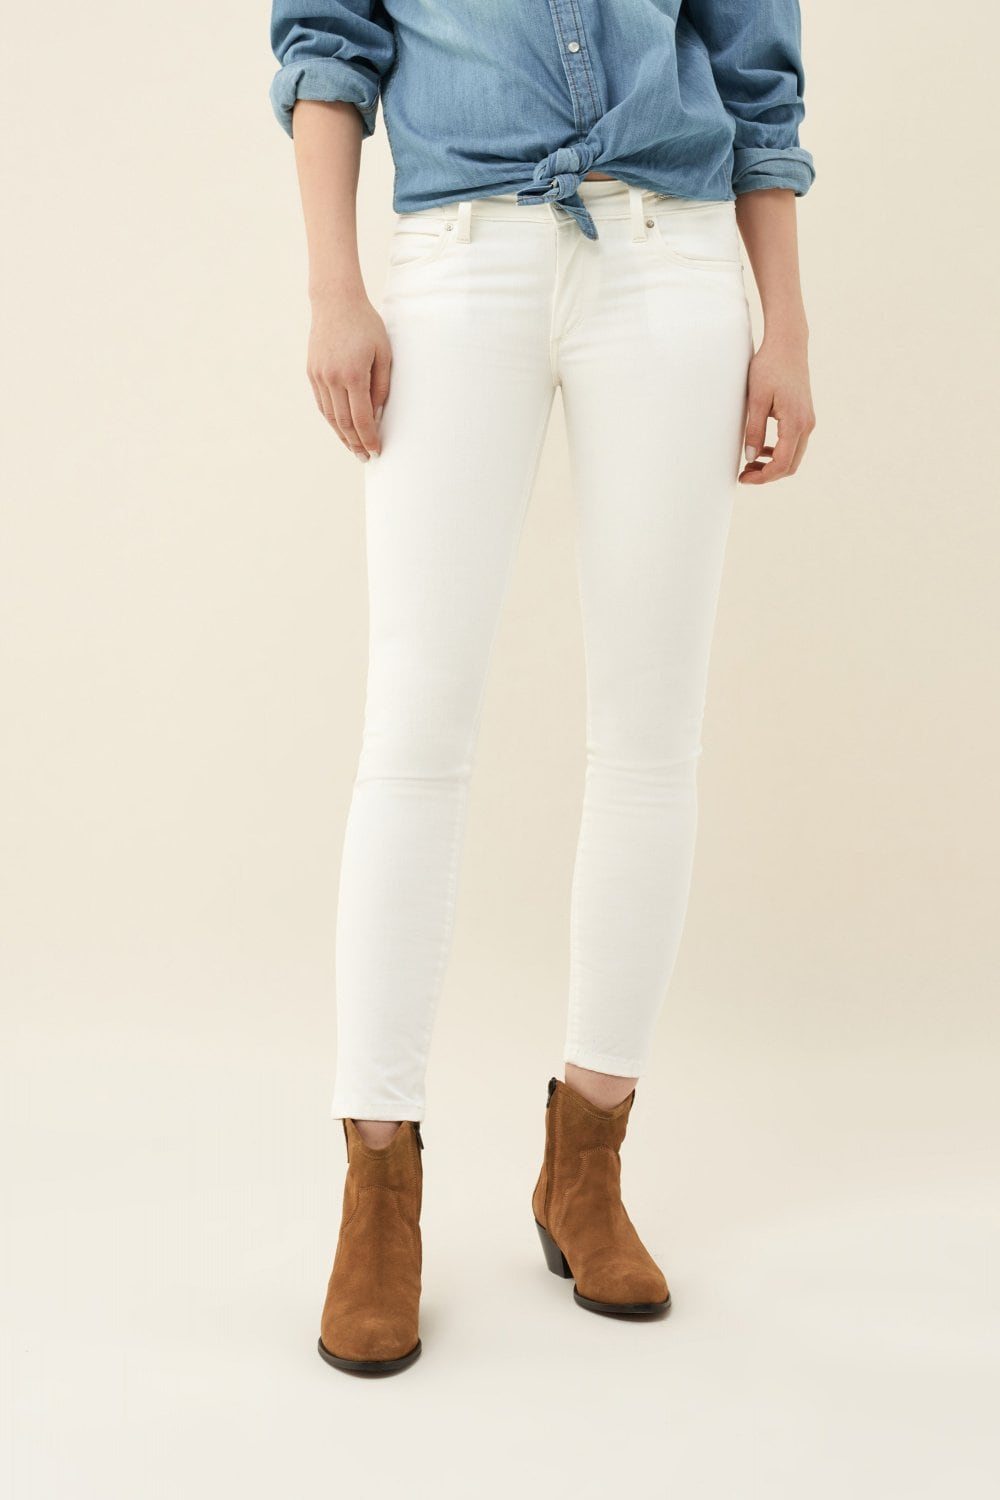 Push Up Wonder capri jeans with detail on belt - Salsa